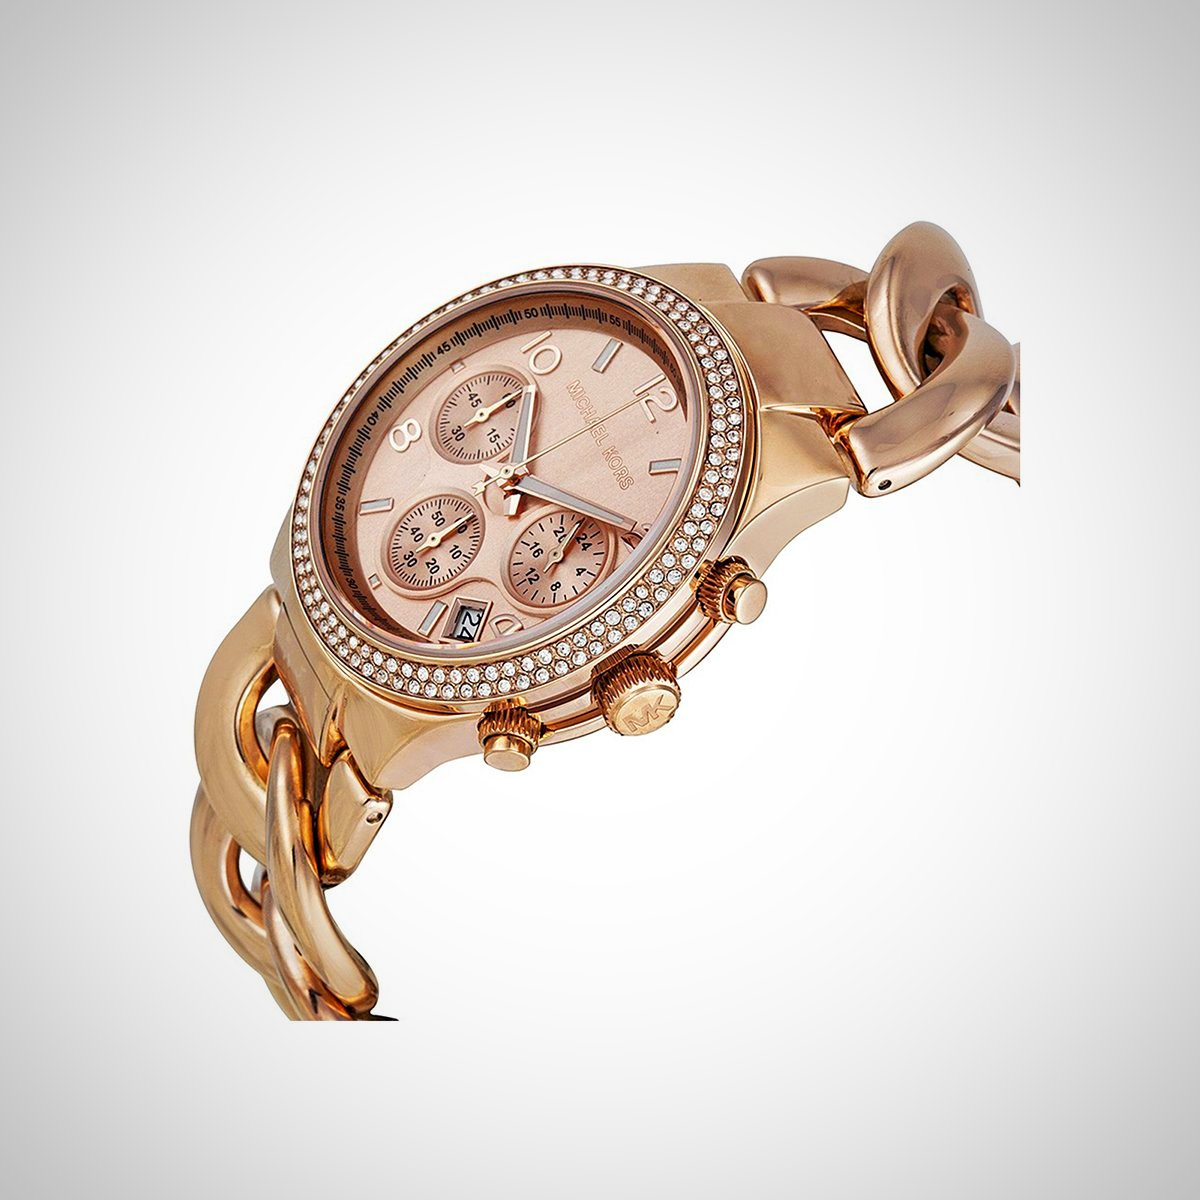 Michael Kors MK3247 Ladies Chronograph Watch